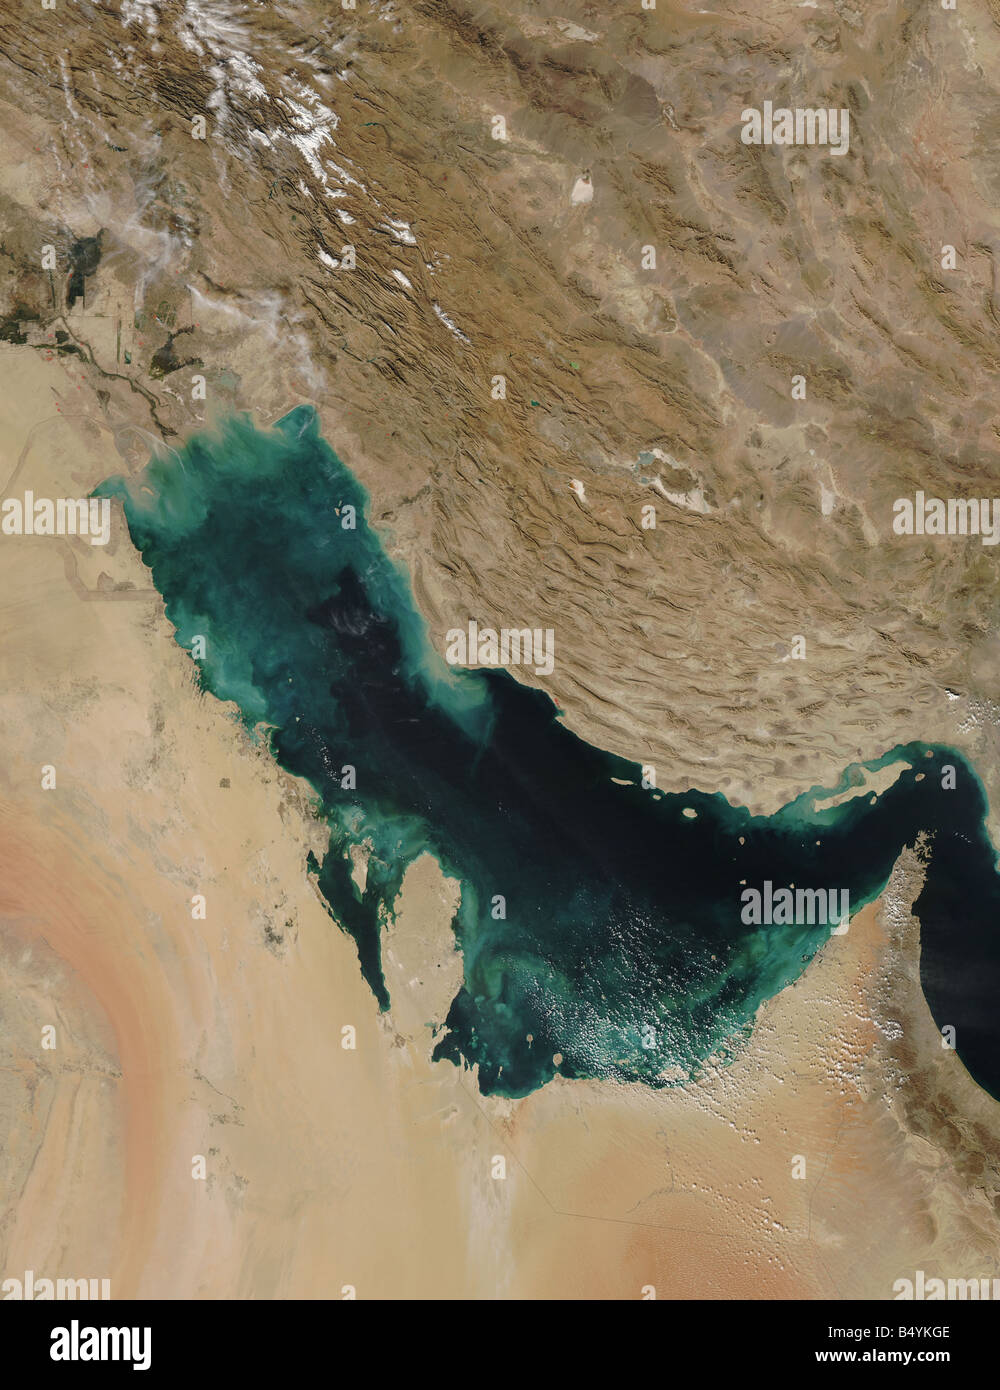 Satellite view of the Persian Gulf - Stock Image